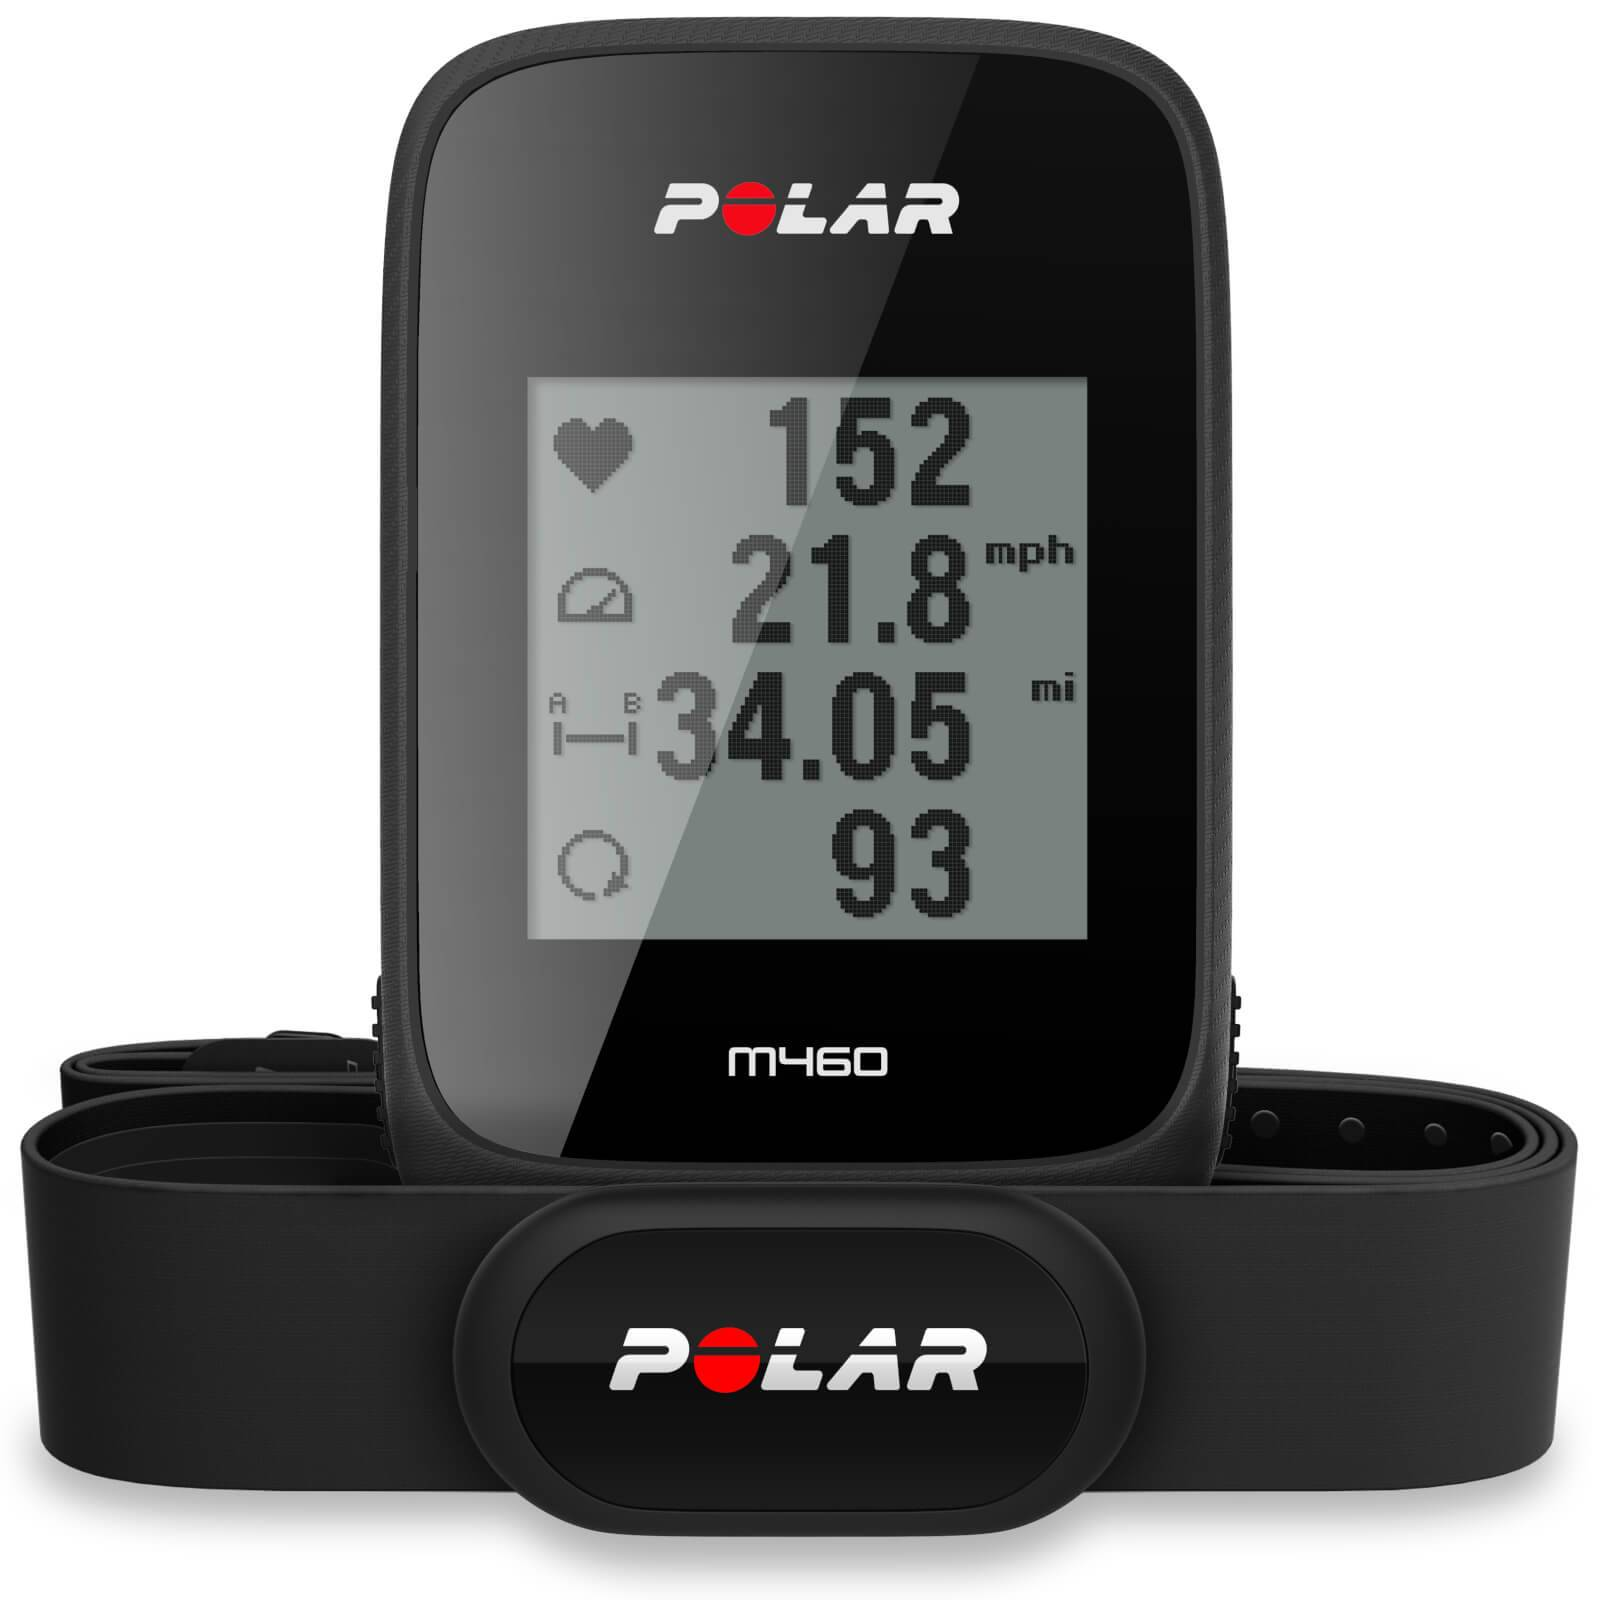 Polar M460 GPS Bike Computer with Heart Rate Monitor - Black;